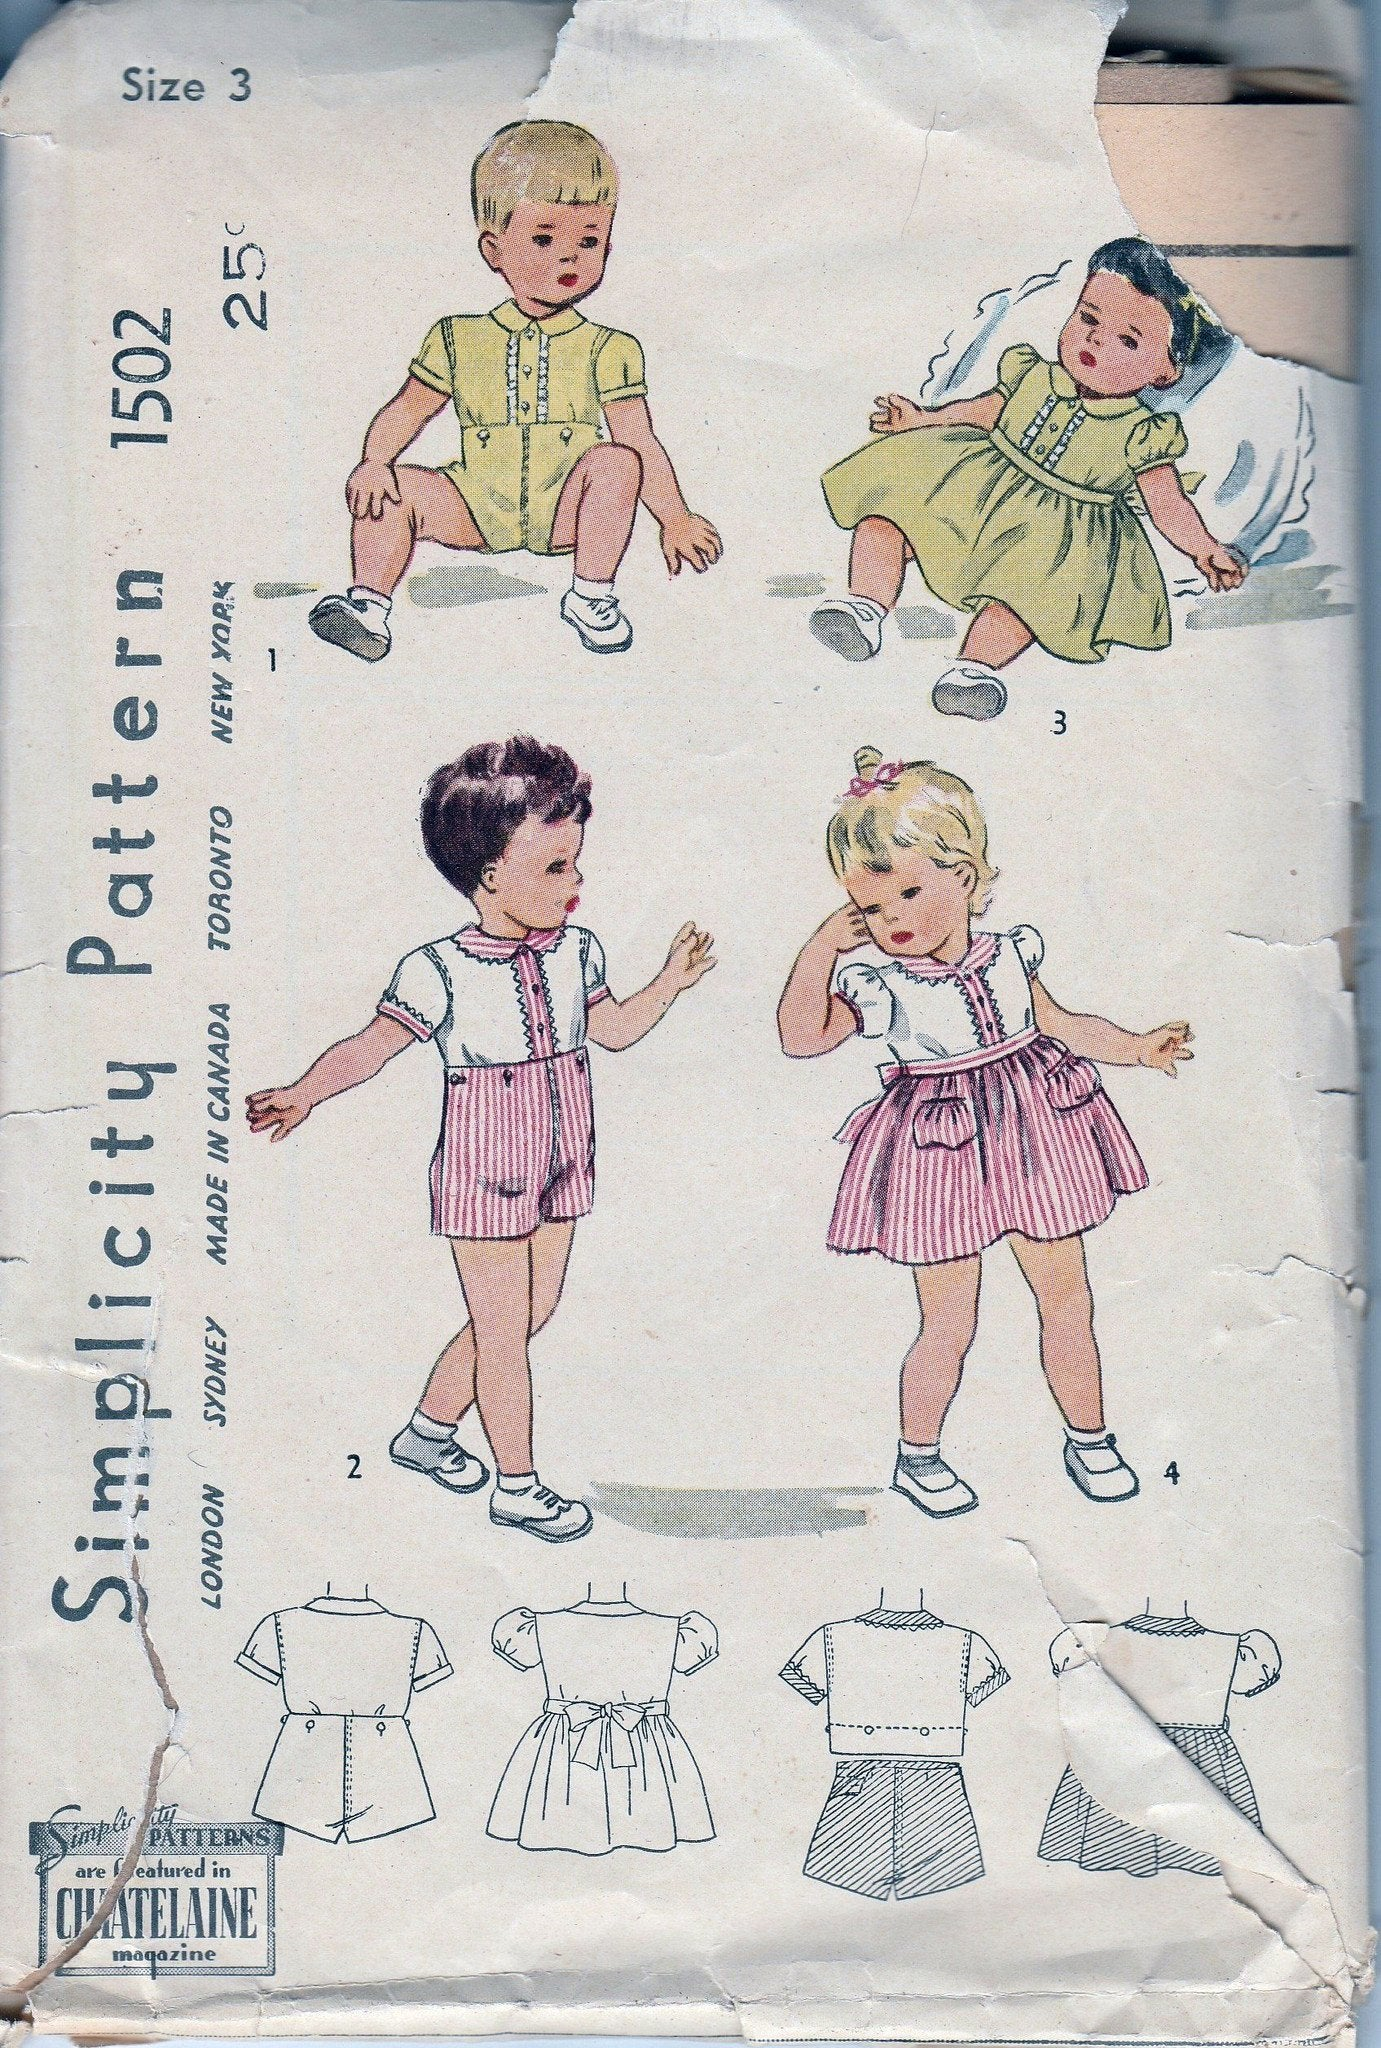 Simplicity 1502 Toddler Boys Two Piece Suit Girls Dress Vintage Pattern 1940's - VintageStitching - Vintage Sewing Patterns